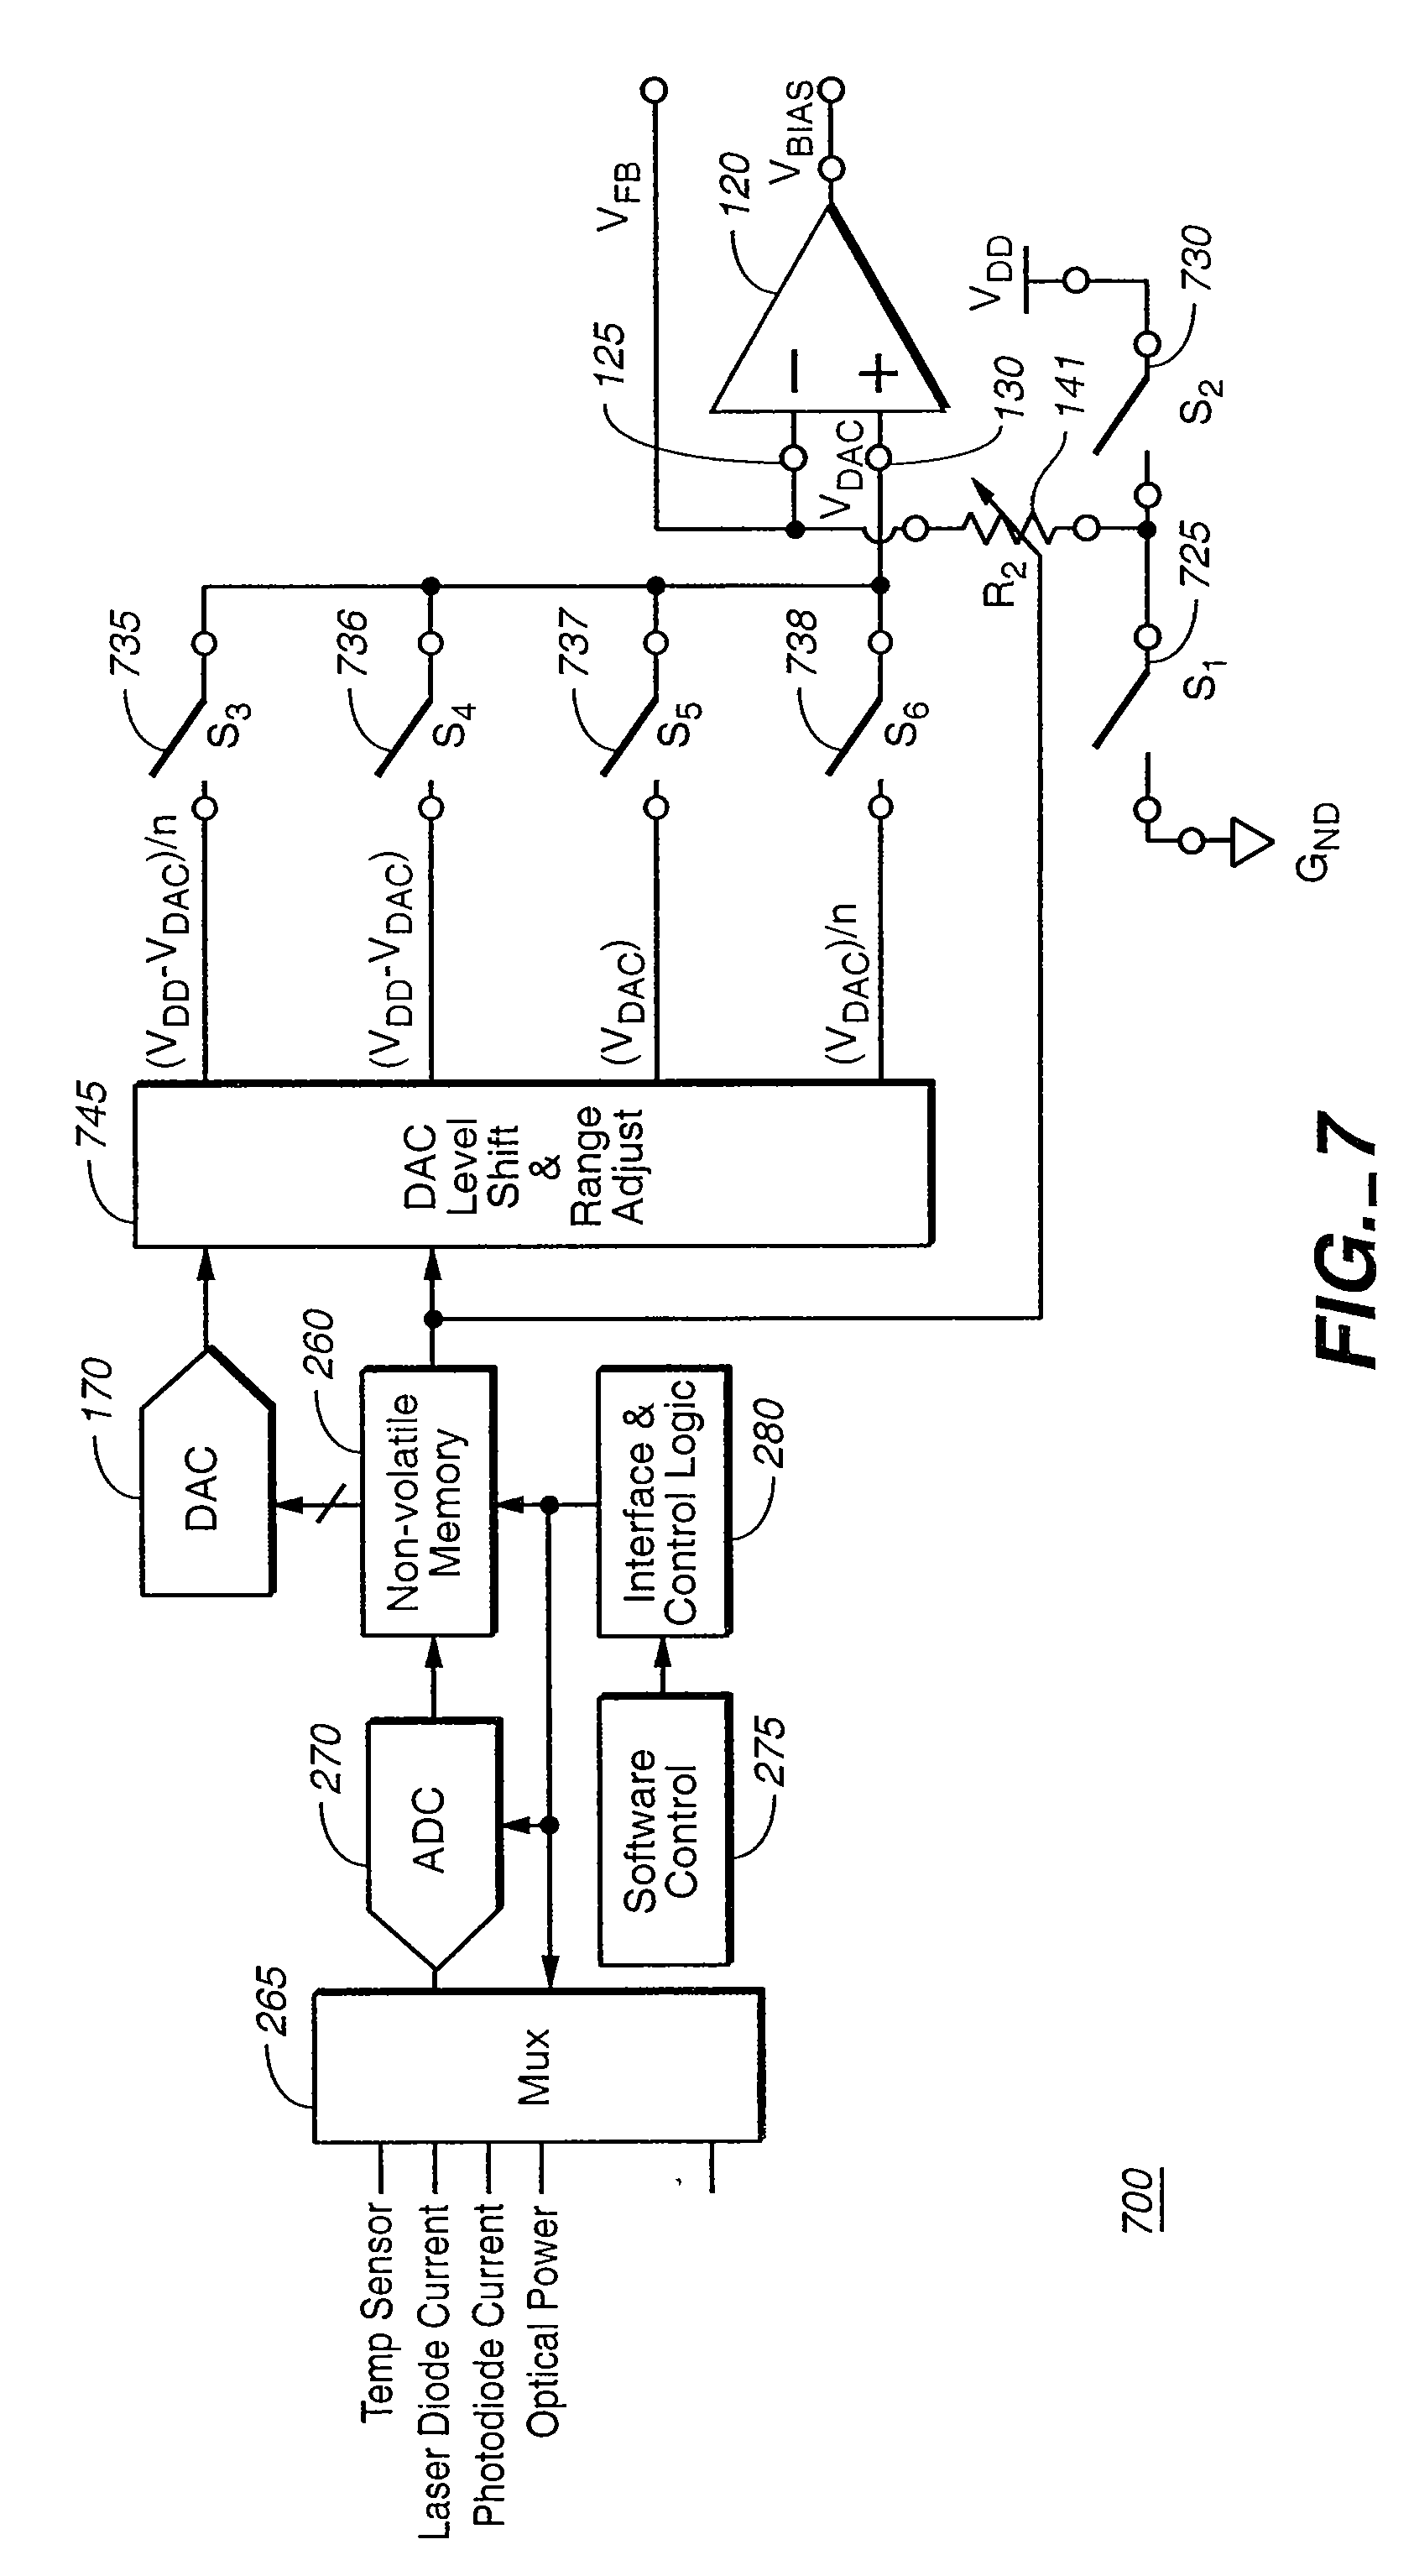 Patente Us20070114361 Automatic Control Of Laser Diode Current And Pulsed Driver Circuit Patent Drawing